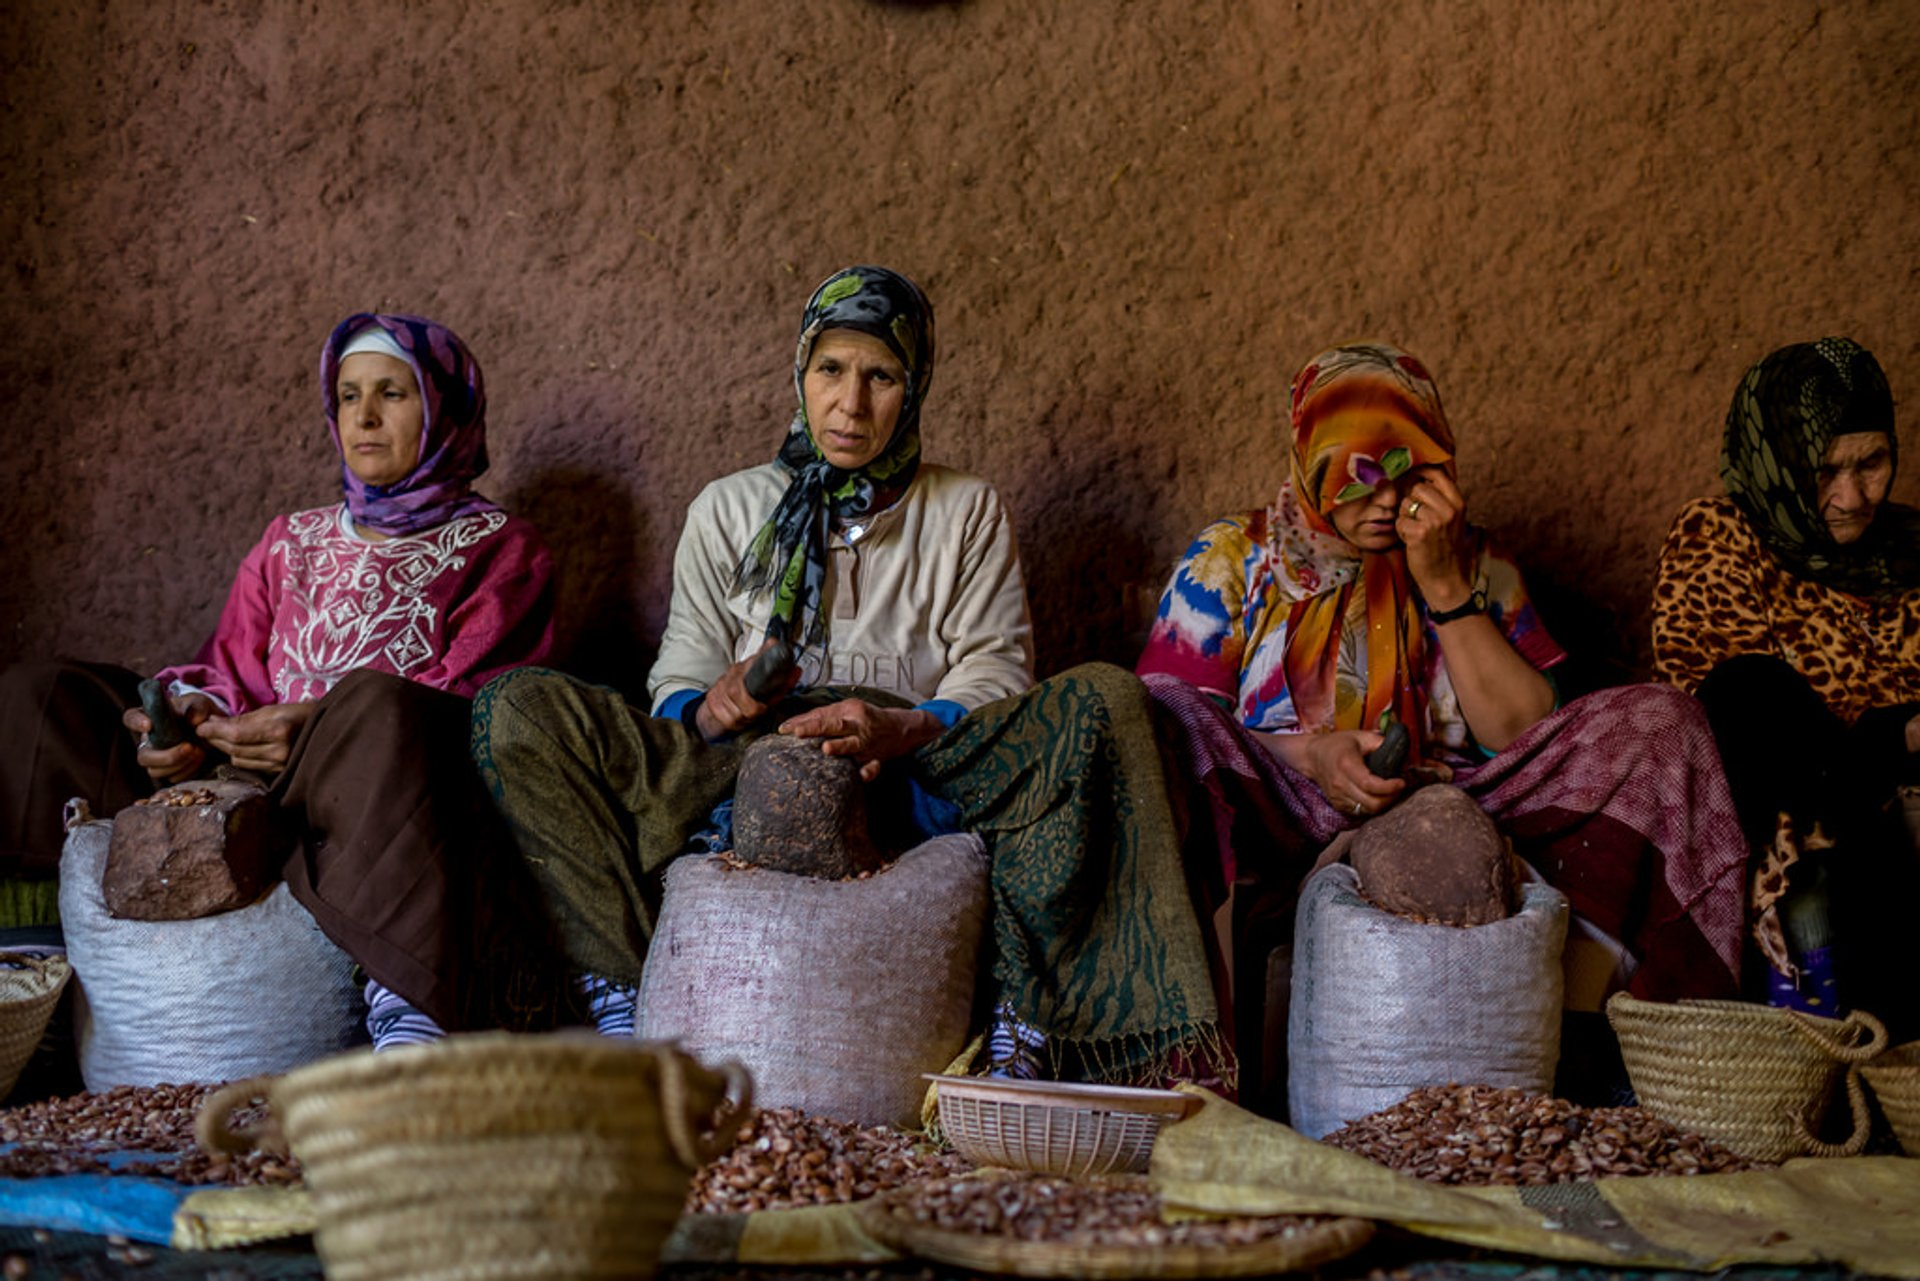 Skilled Berber women cracking argan nuts 2020